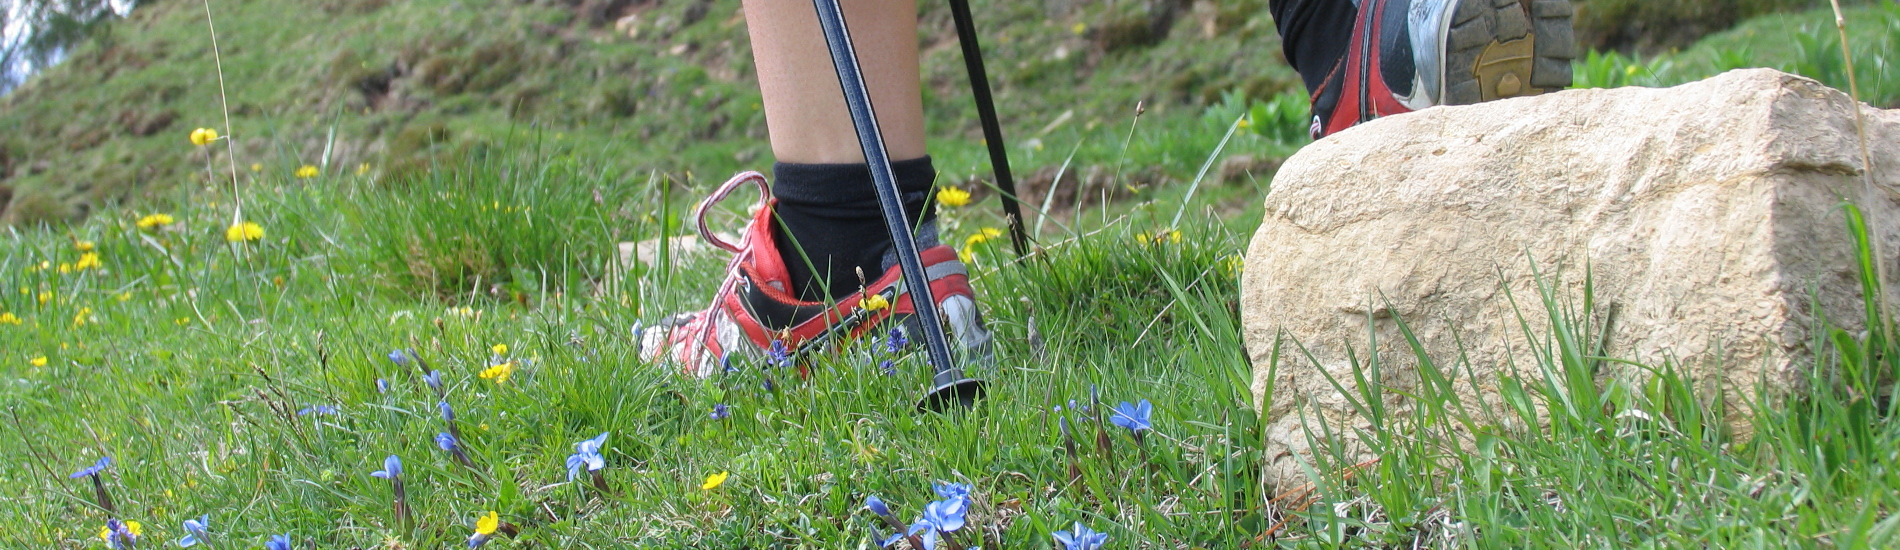 Percorsi di Nordic Walking con le Guide in Trentino